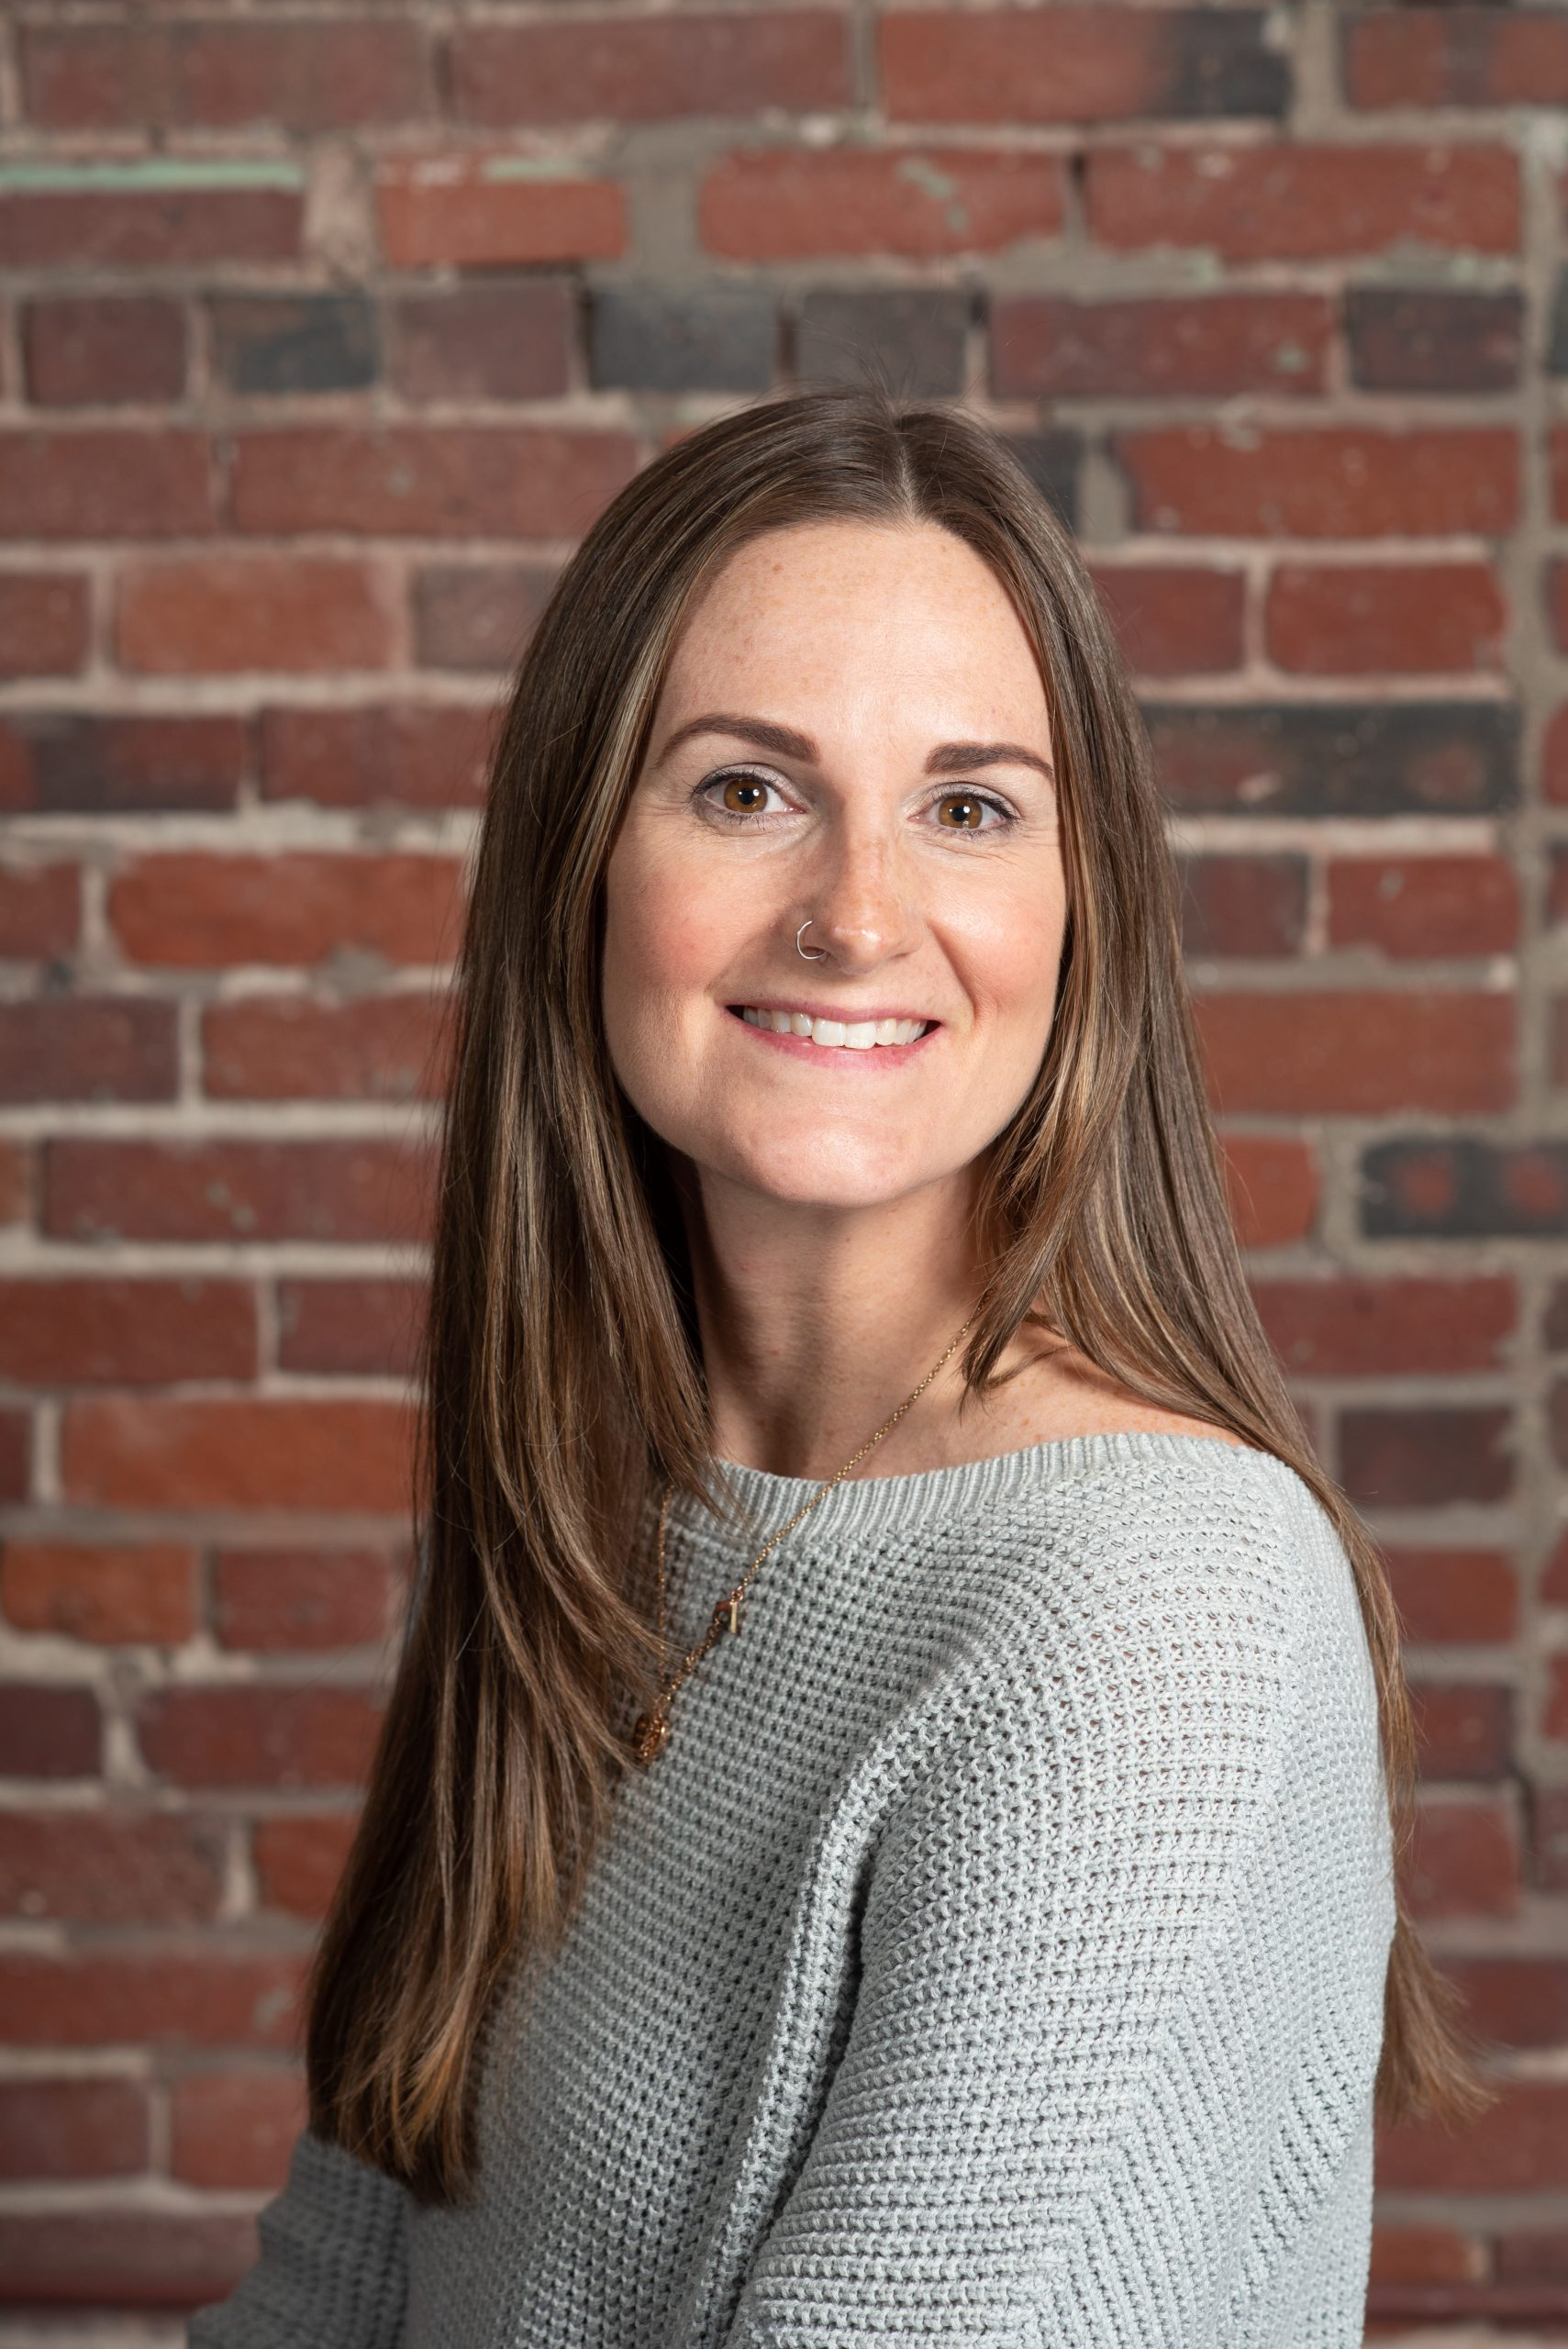 A photo of Noelle Hurley Marketing Communications Manager in front of a brick wall.